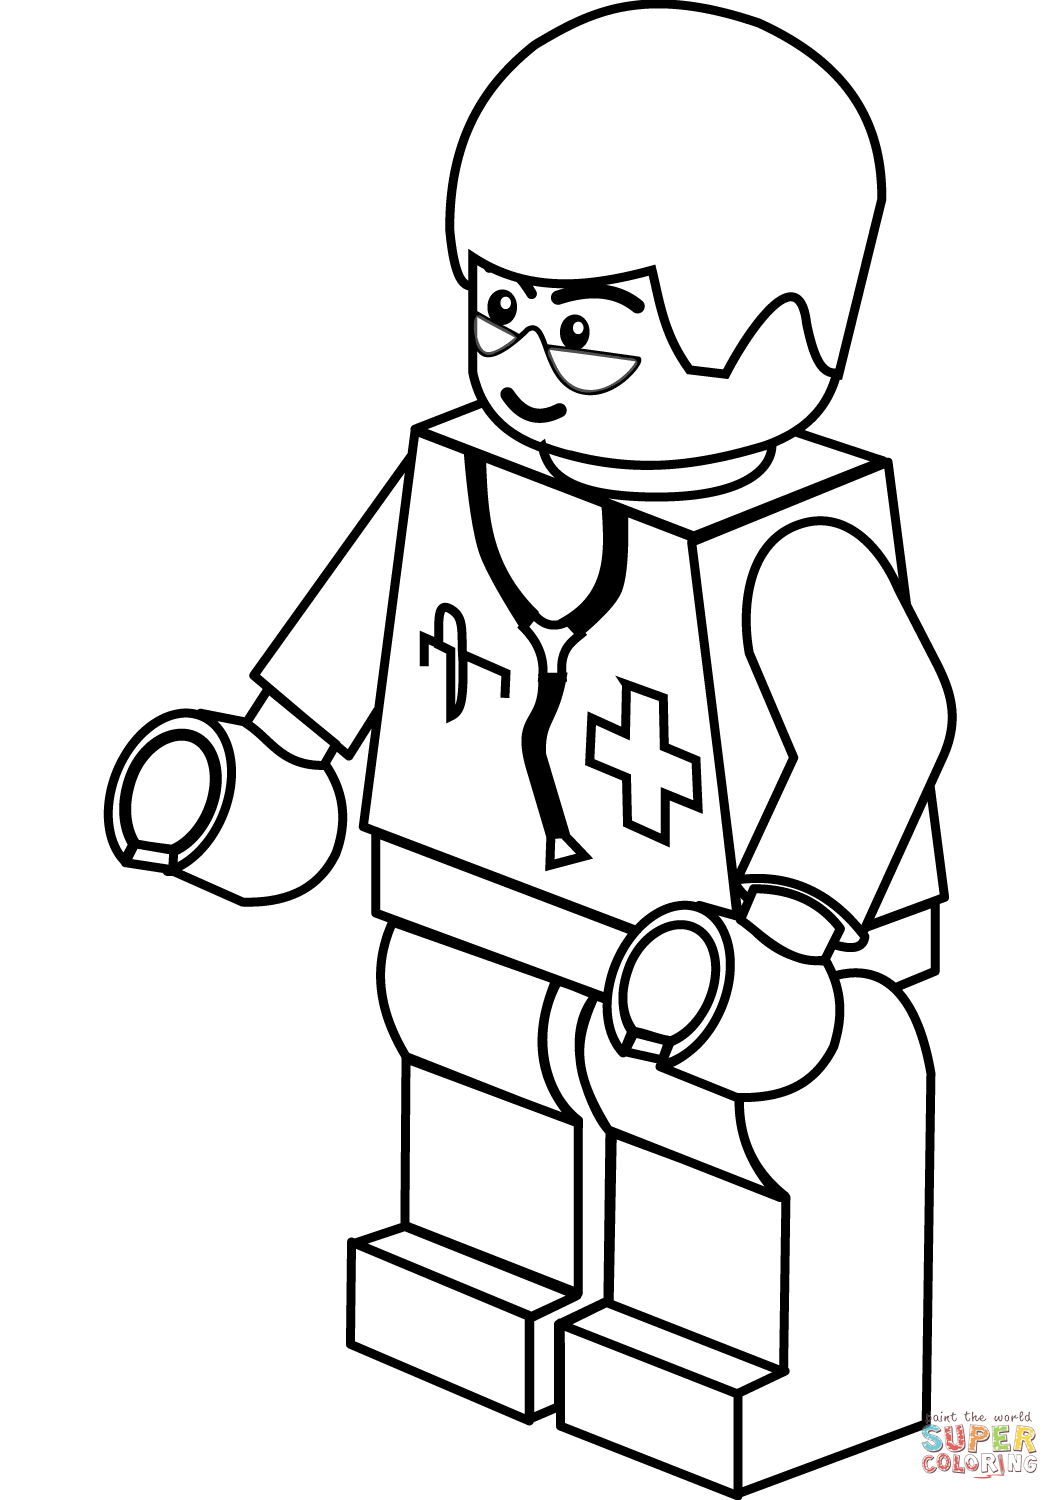 Lego Doctor coloring page | Free Printable Coloring Pages ...